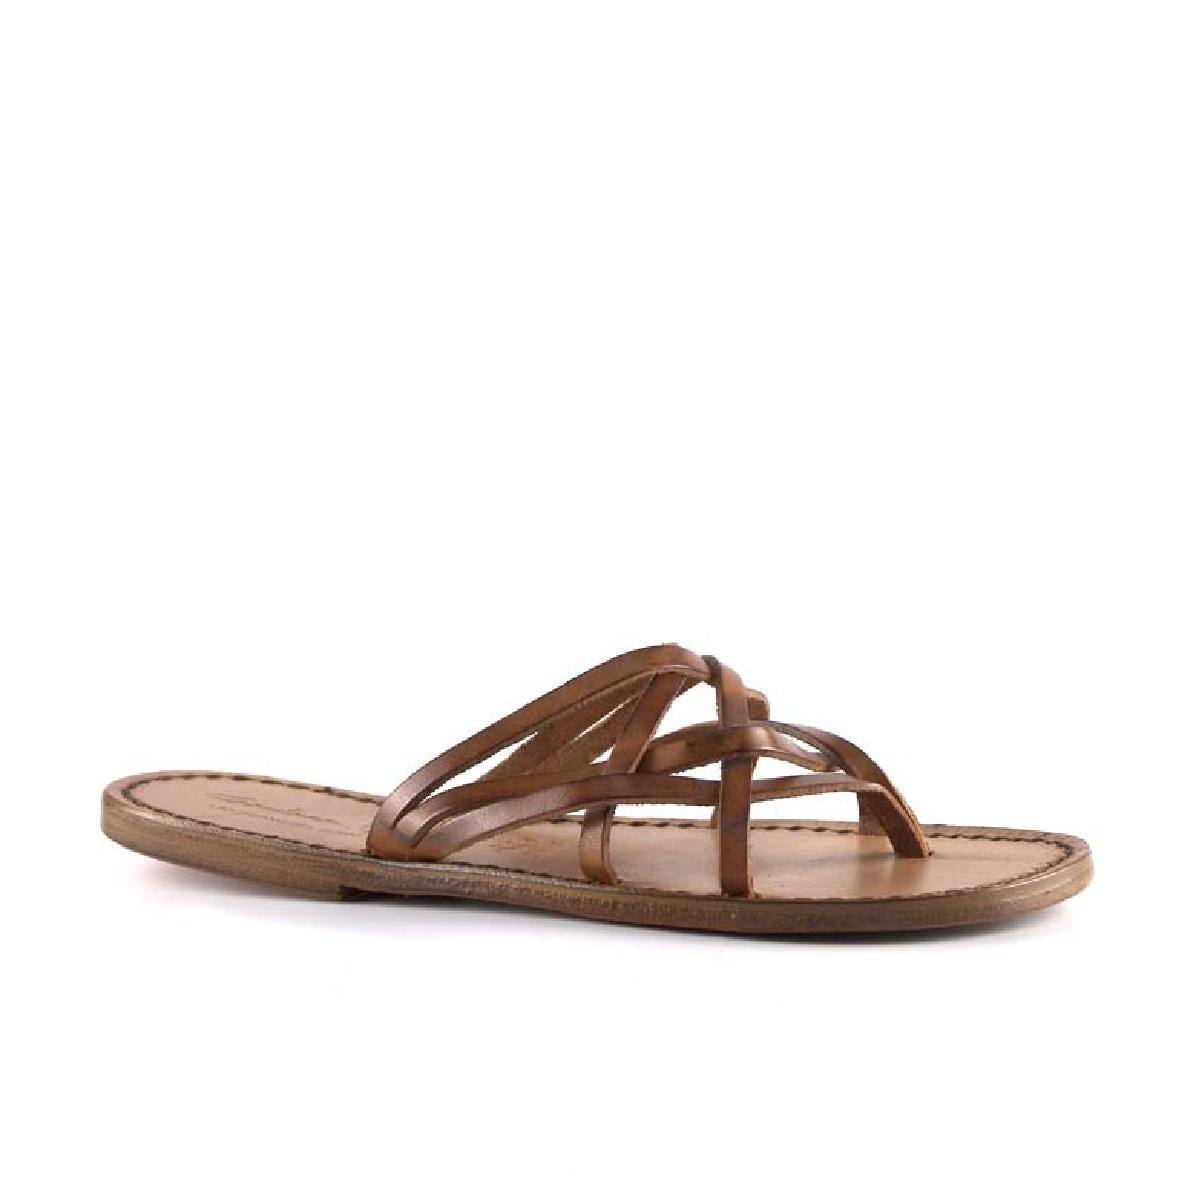 849bf2bdce72 Manmade vintage cuir leather strips womens slides with leather sole. Loading  zoom